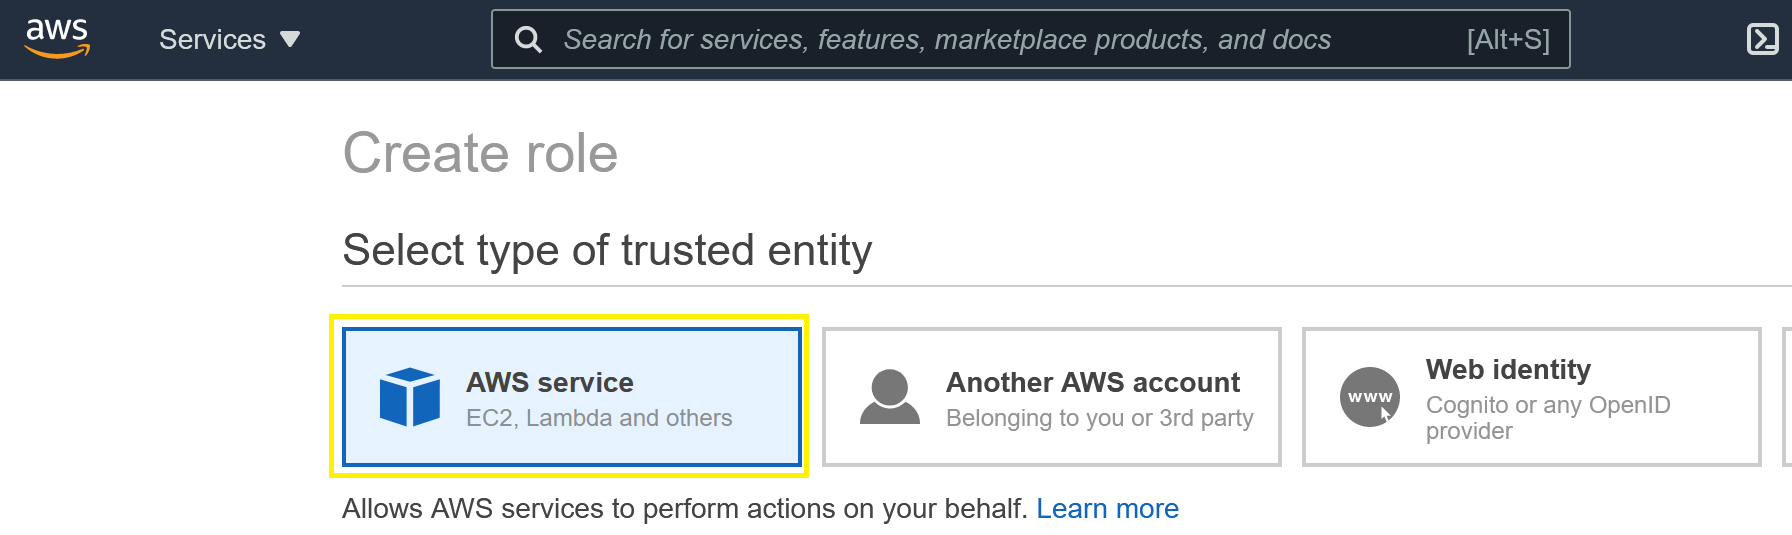 Create Role menu showing AWS Service selection.